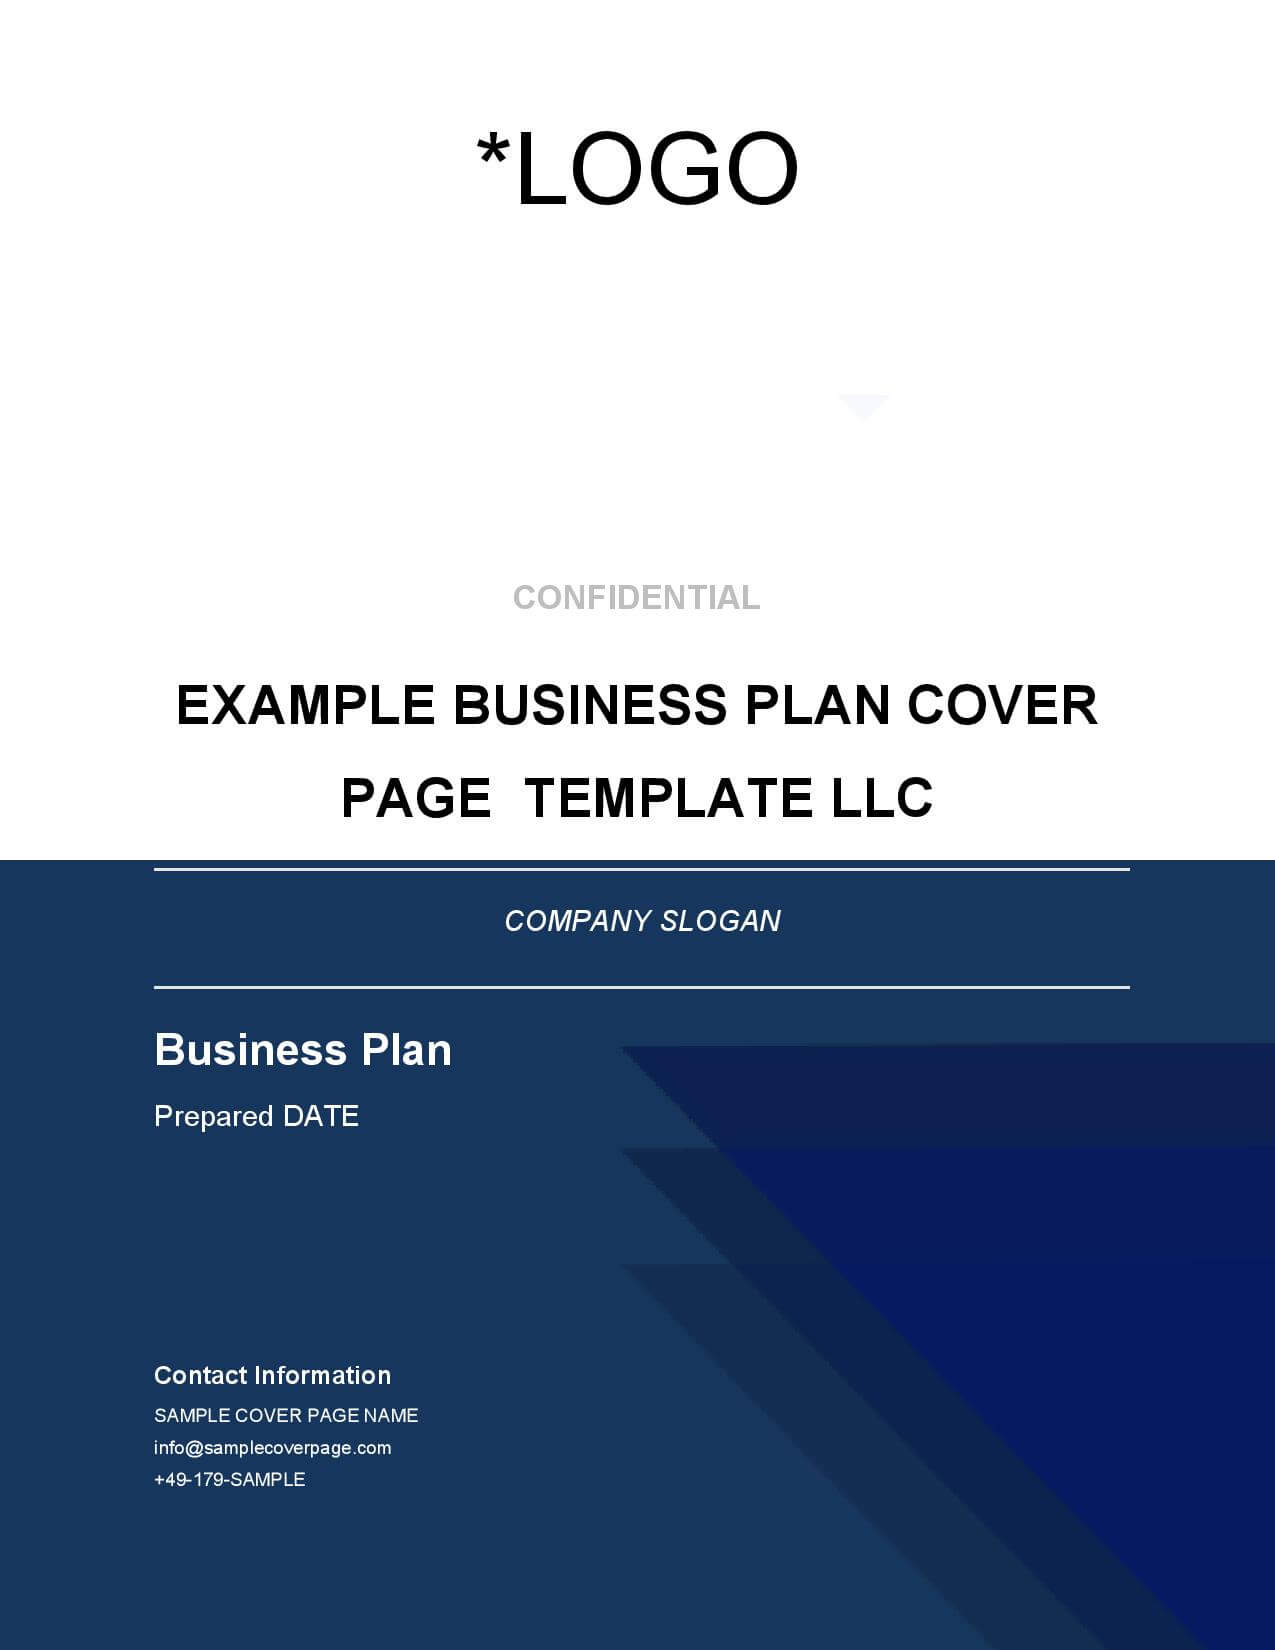 Business plan cover page template brainhive business planning businessplan cover page template en 1 page 001 accmission Images